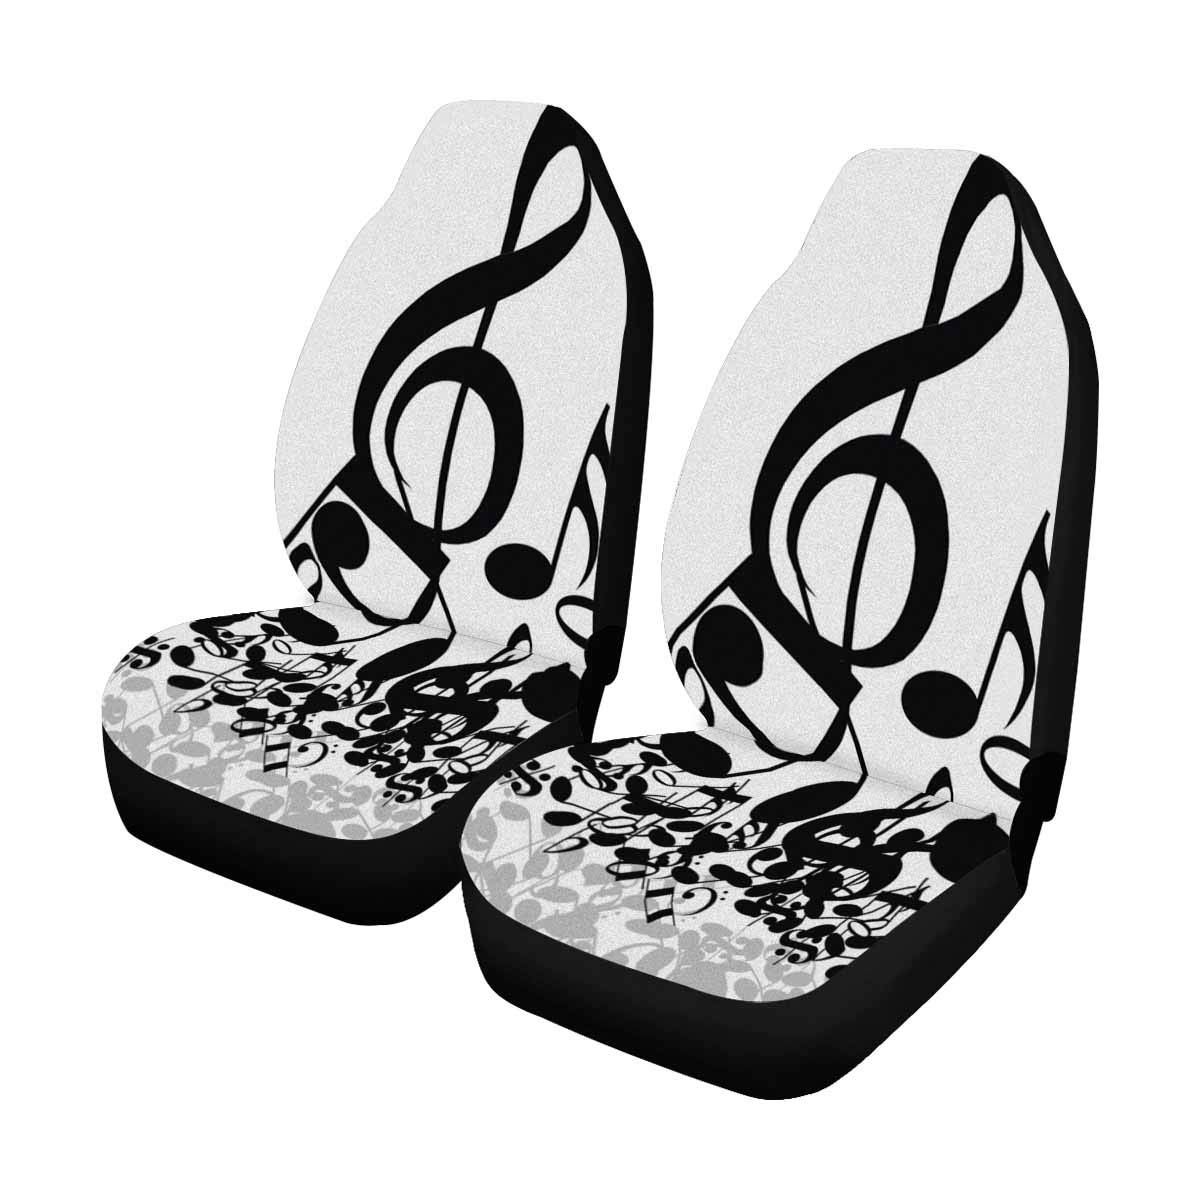 Vehicle Seat Protector Car Mat Covers Van Fit Most Vehicle Cars Truck SUV Sedan INTERESTPRINT Music Note Auto Seat Protector 2 Pack